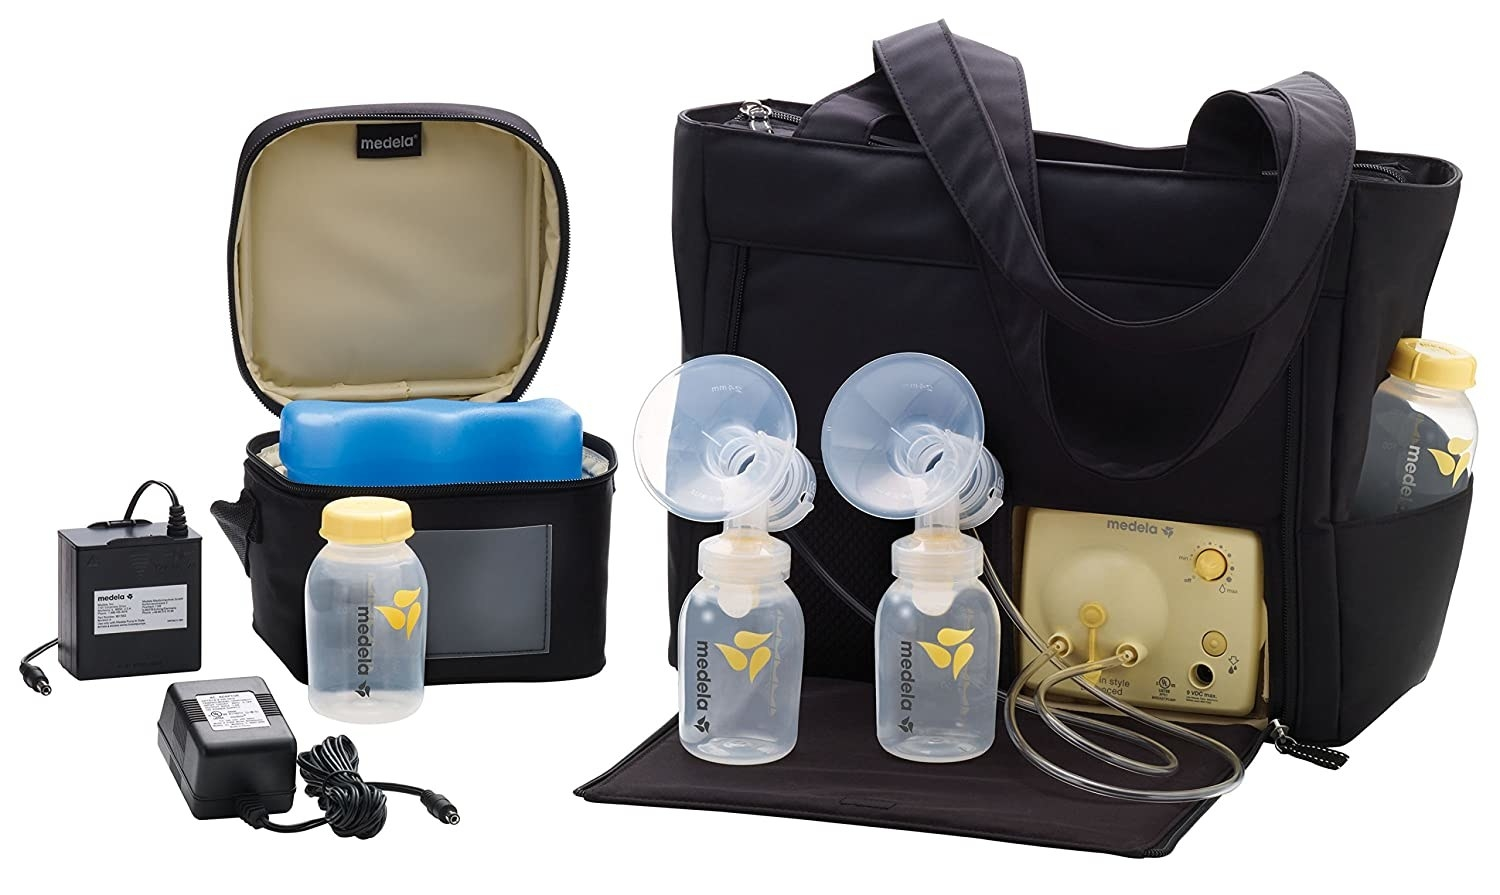 The breastfeeding kit